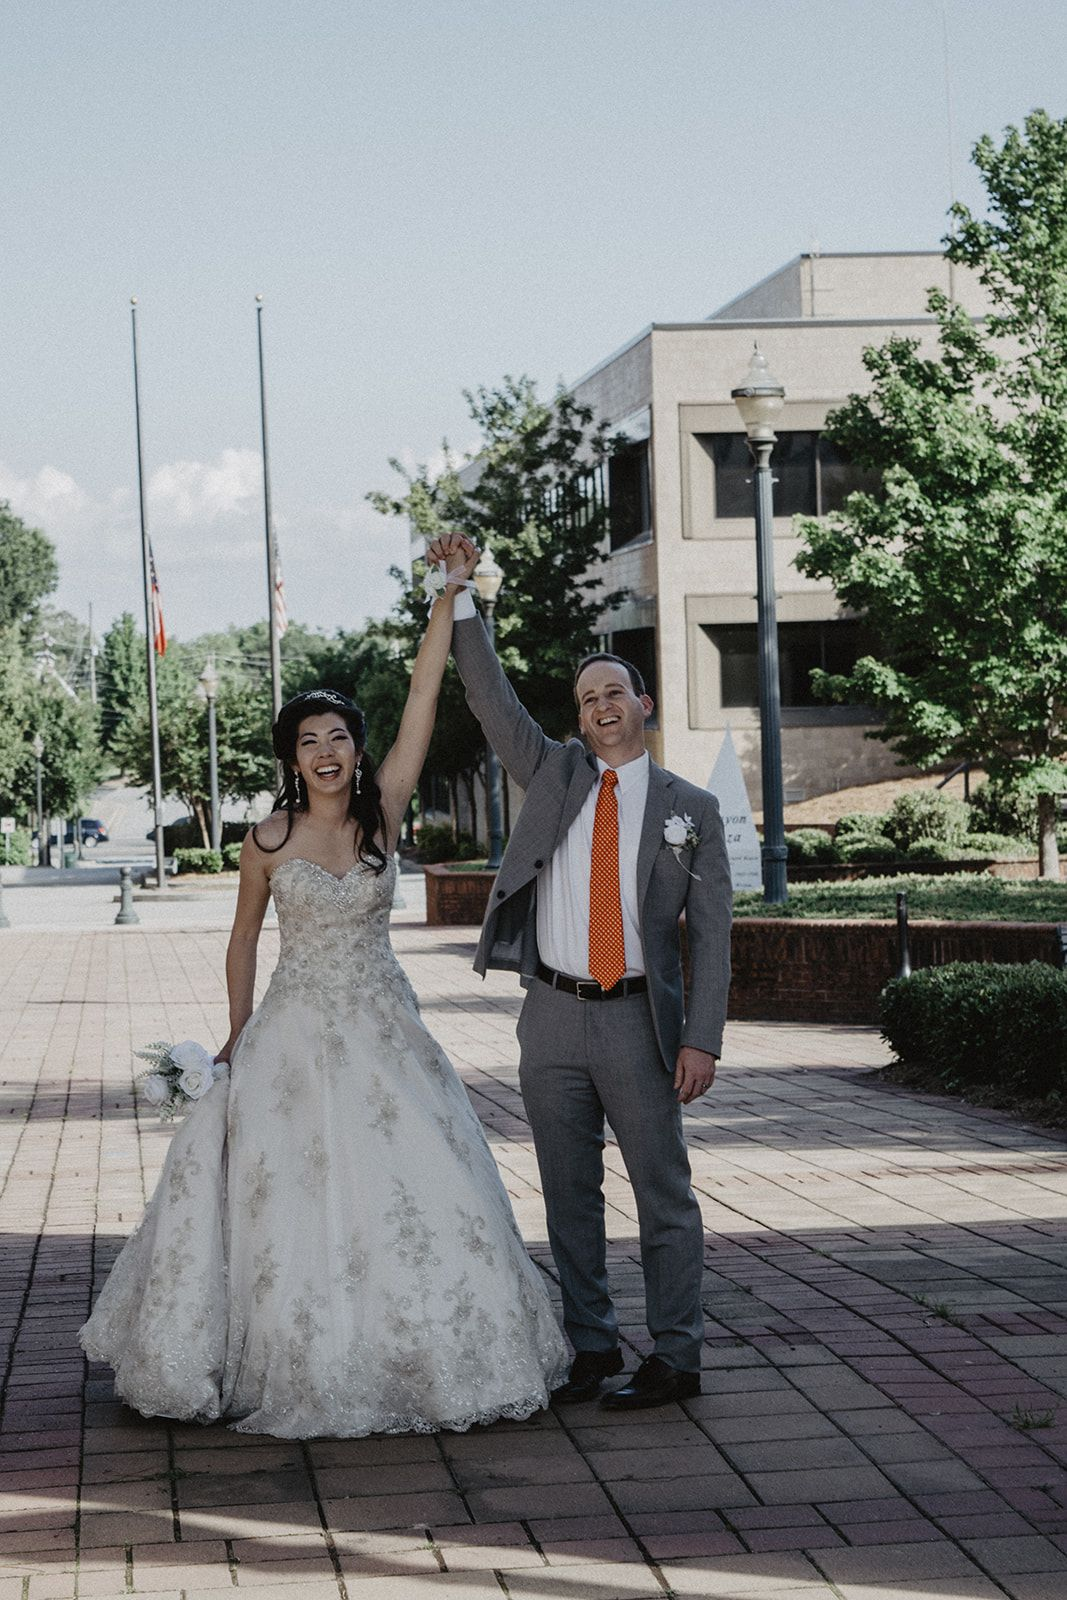 Bride and groom celebrating after their courthouse ceremony